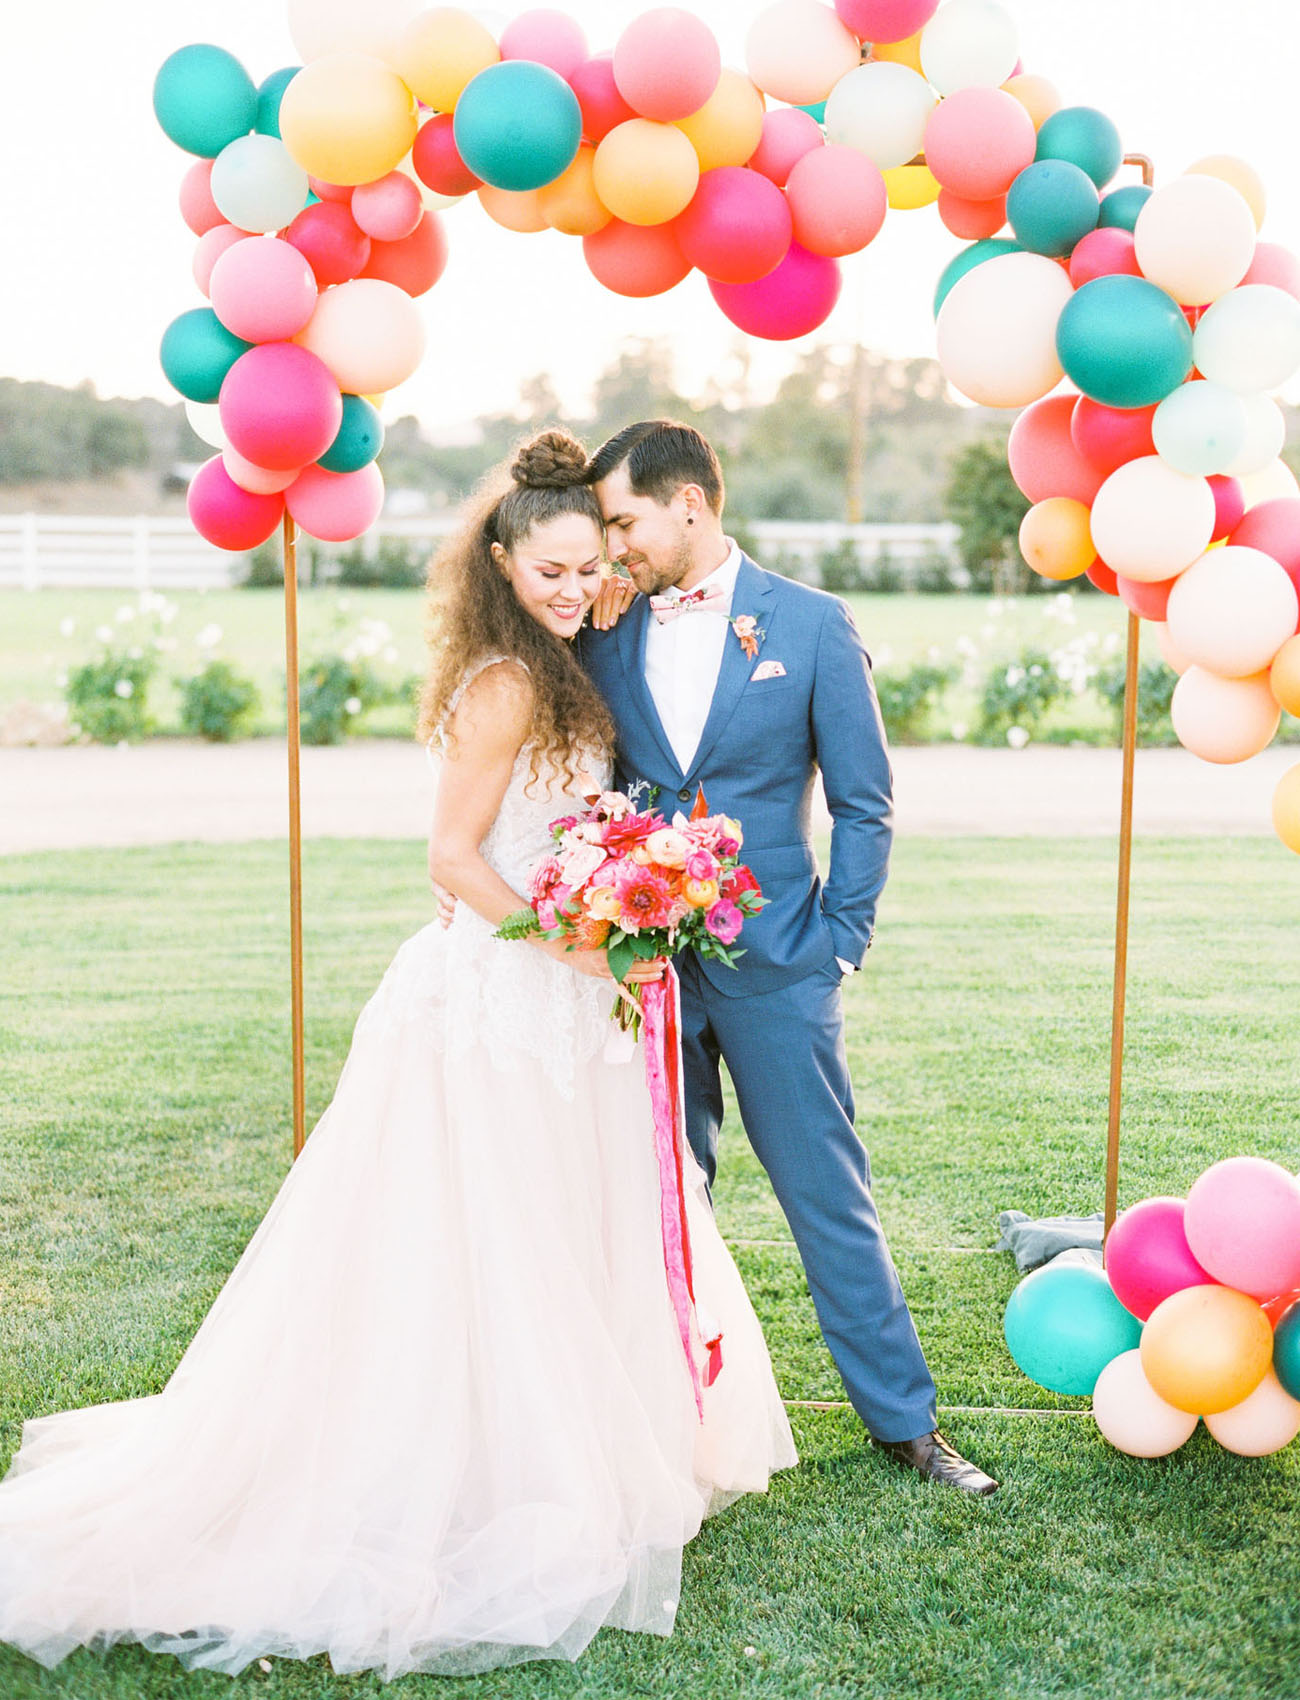 ballon arch backdrop